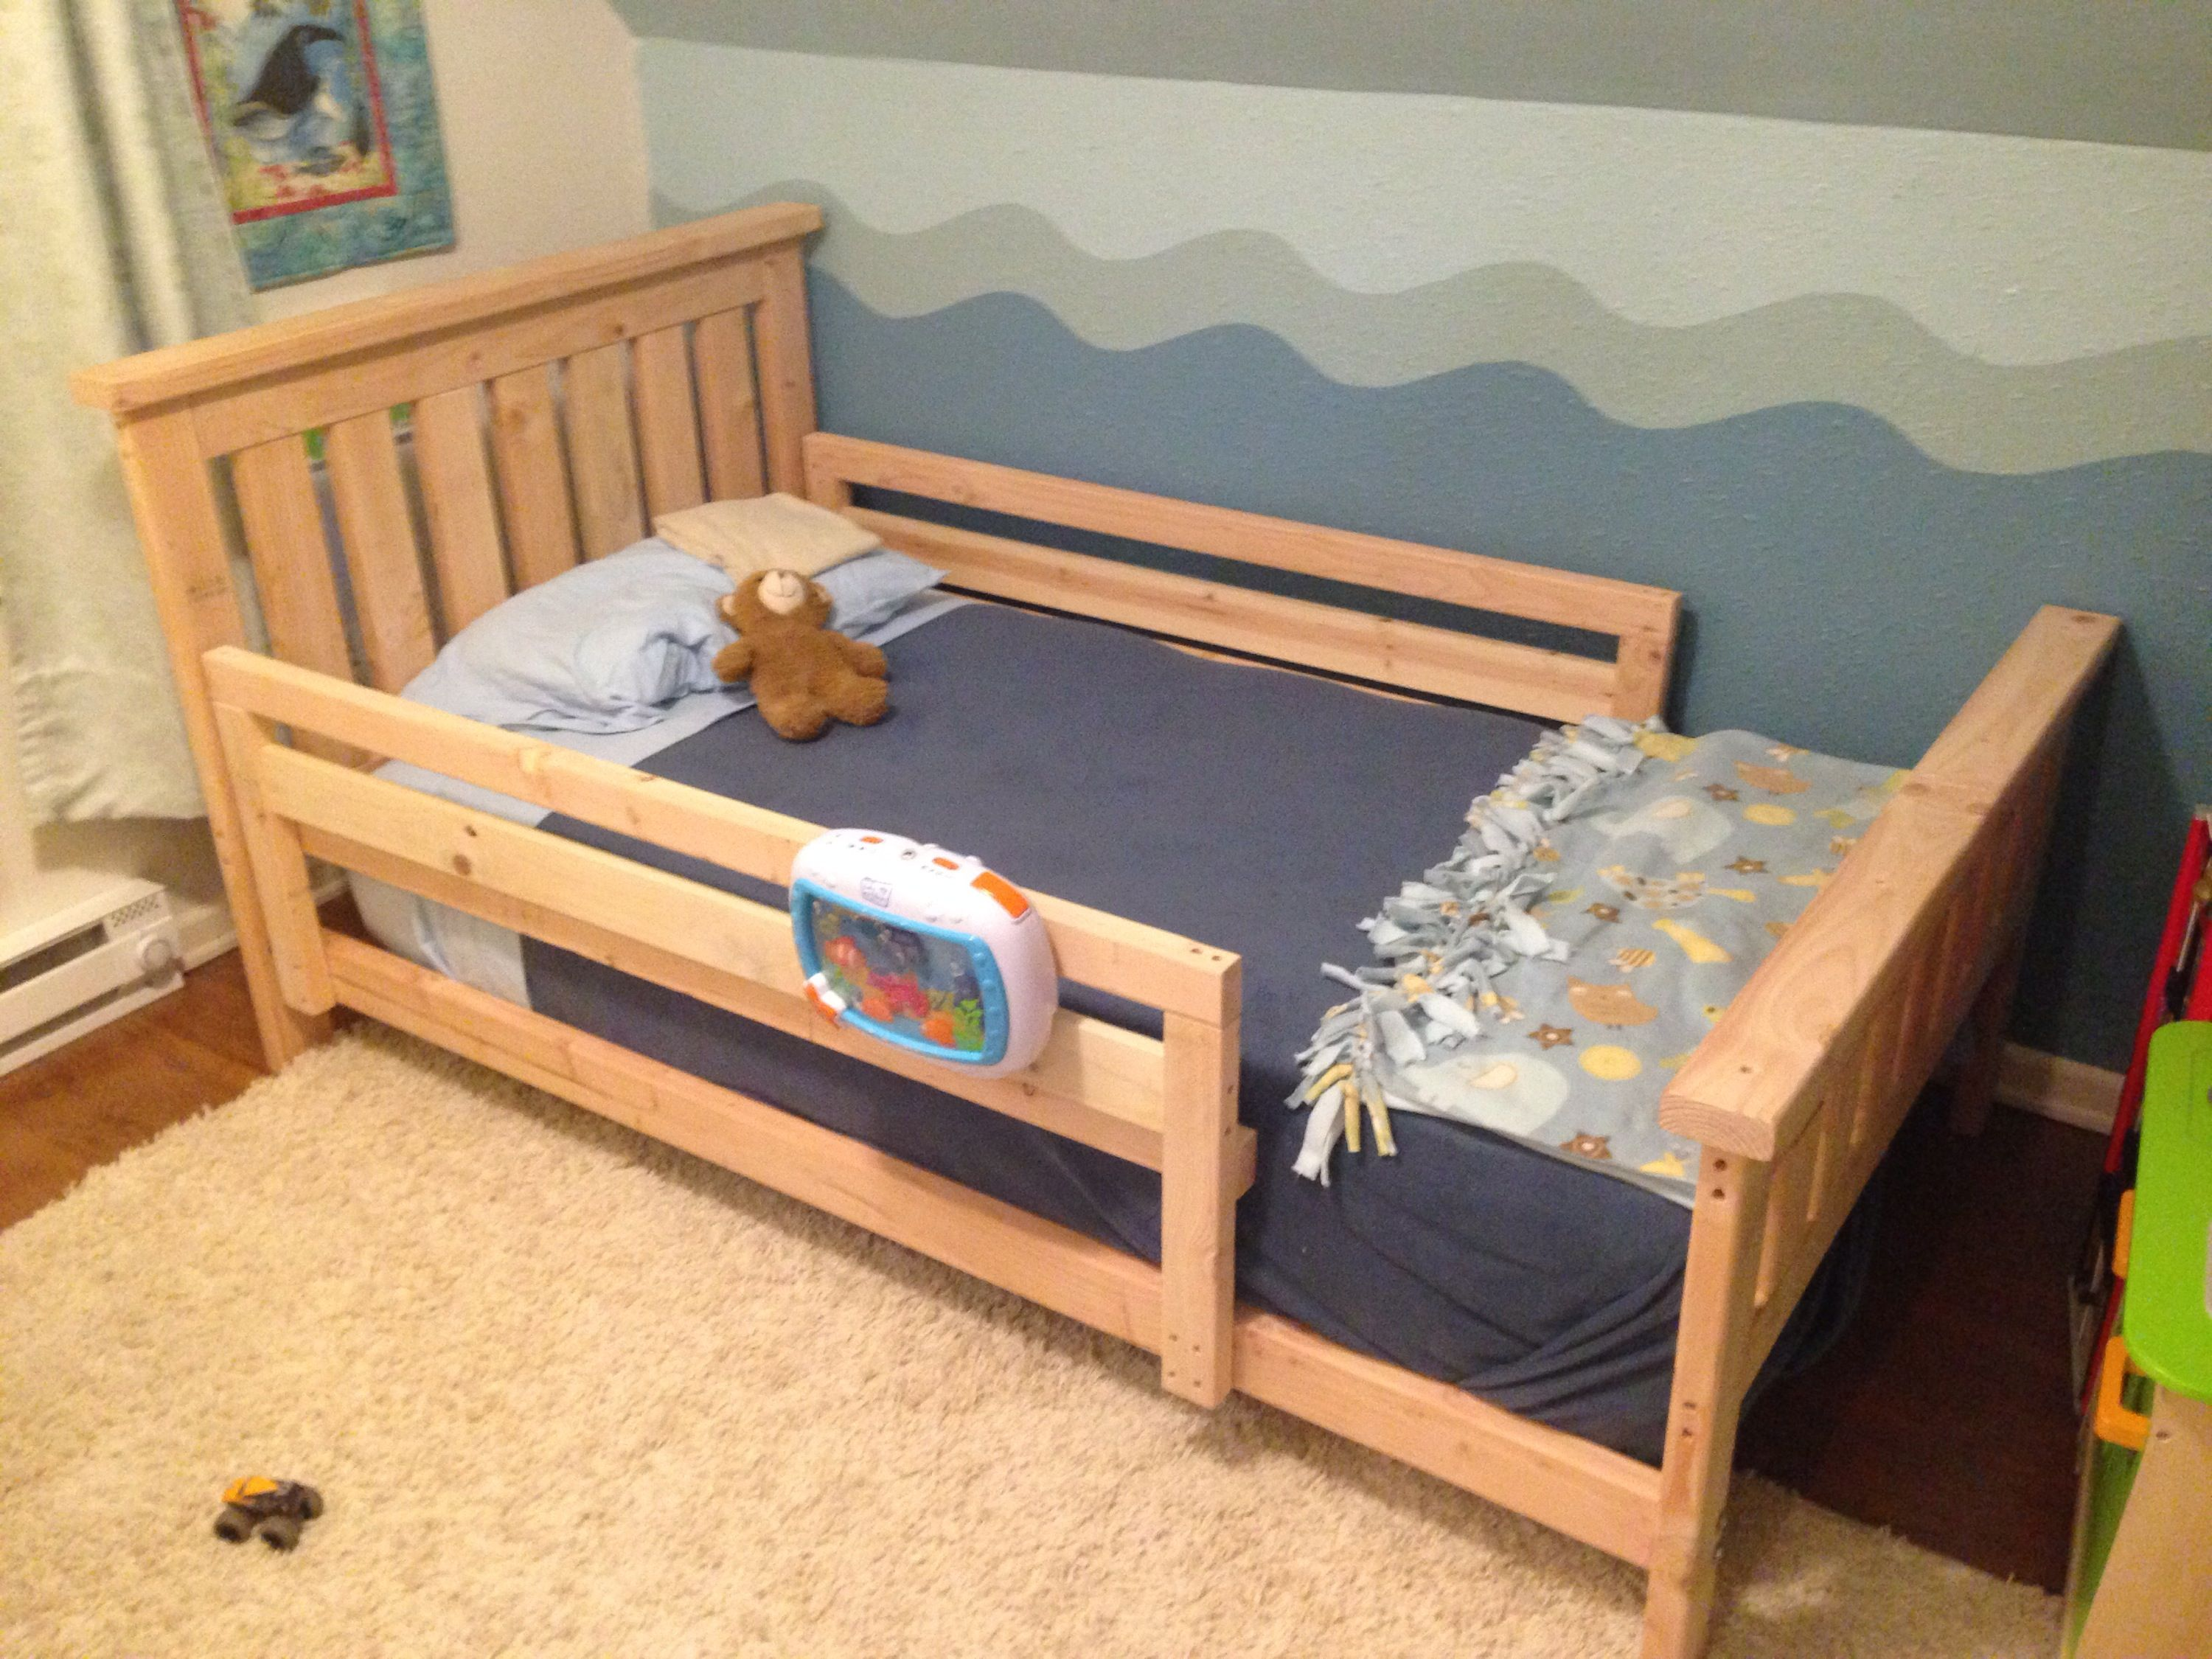 Diy 2x4 Bed Frame Howtospecialist How To Build Step By Step Diy Plans Diy Toddler Bed Kids Bed Frames Toddler Twin Bed